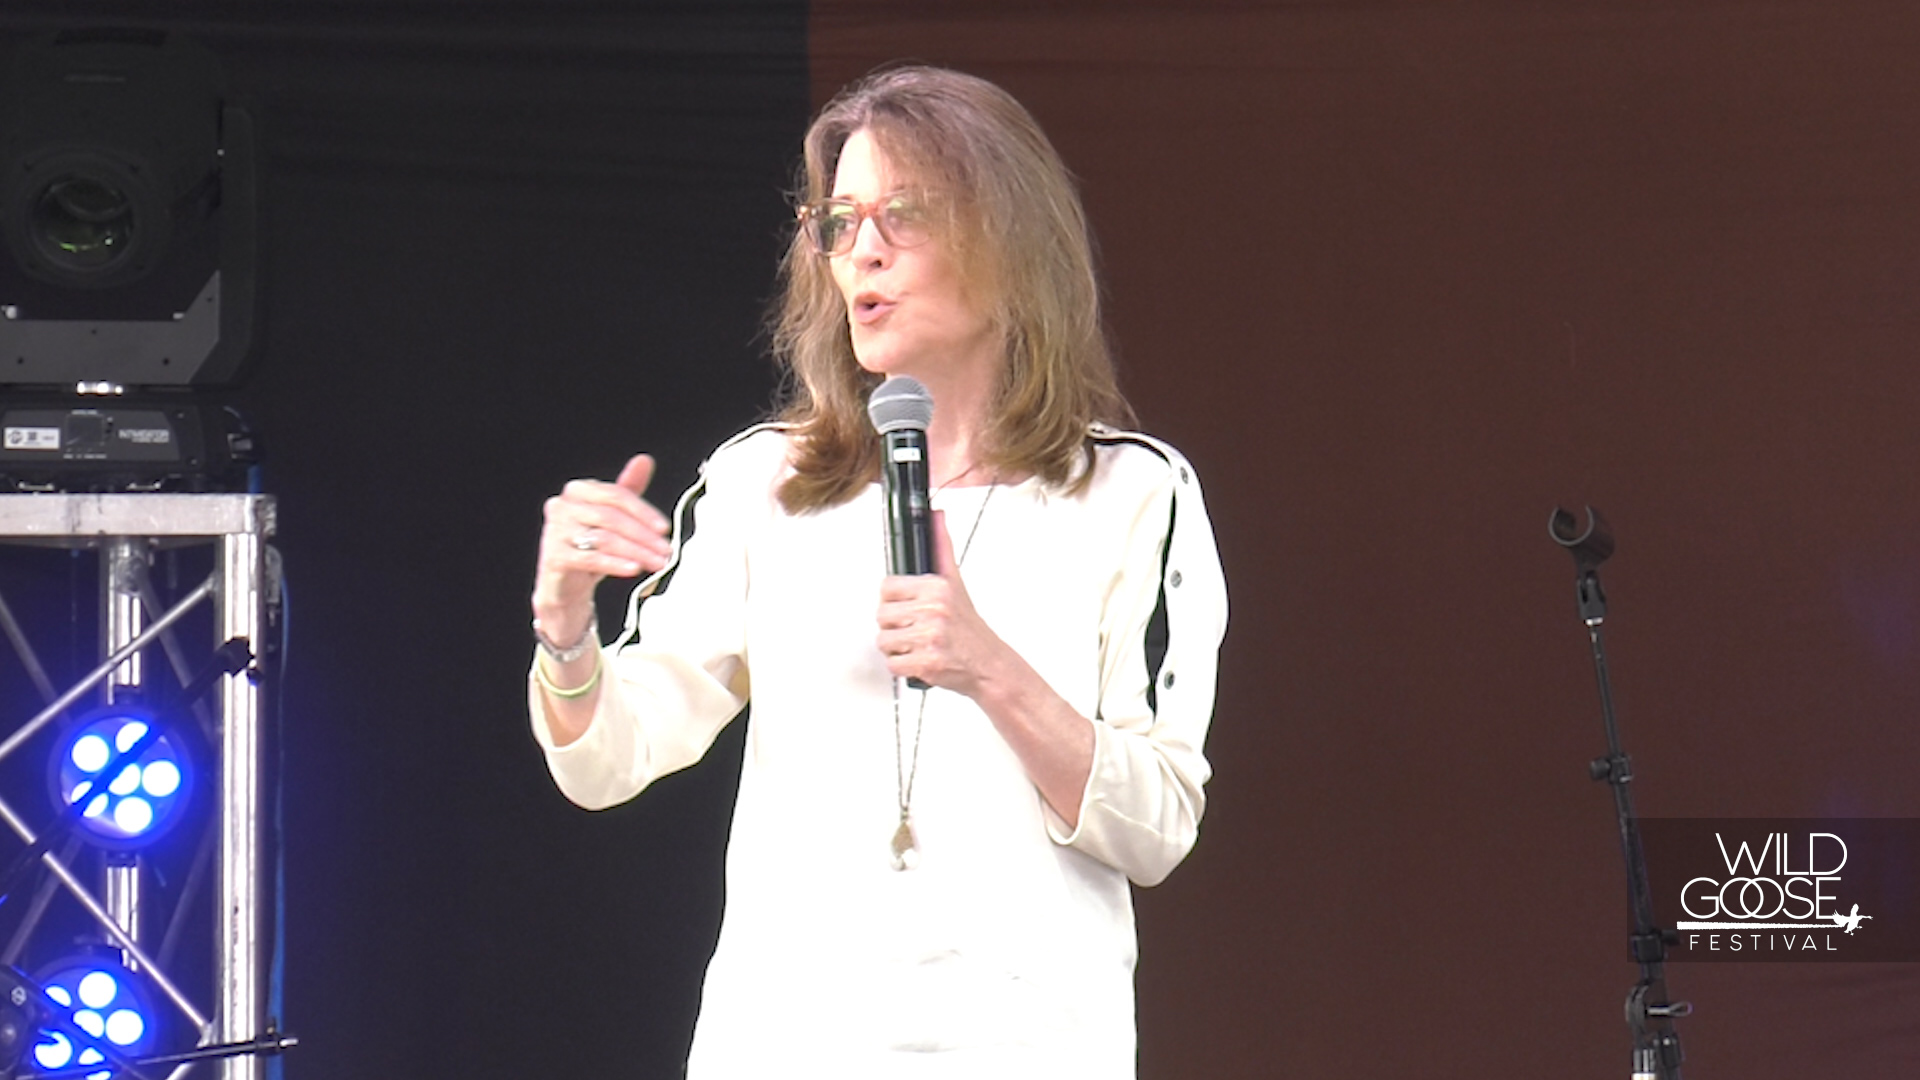 MARIANNE WILLIAMSON: THE RE-EMERGENCE OF THE RELIGIOUS LEFT